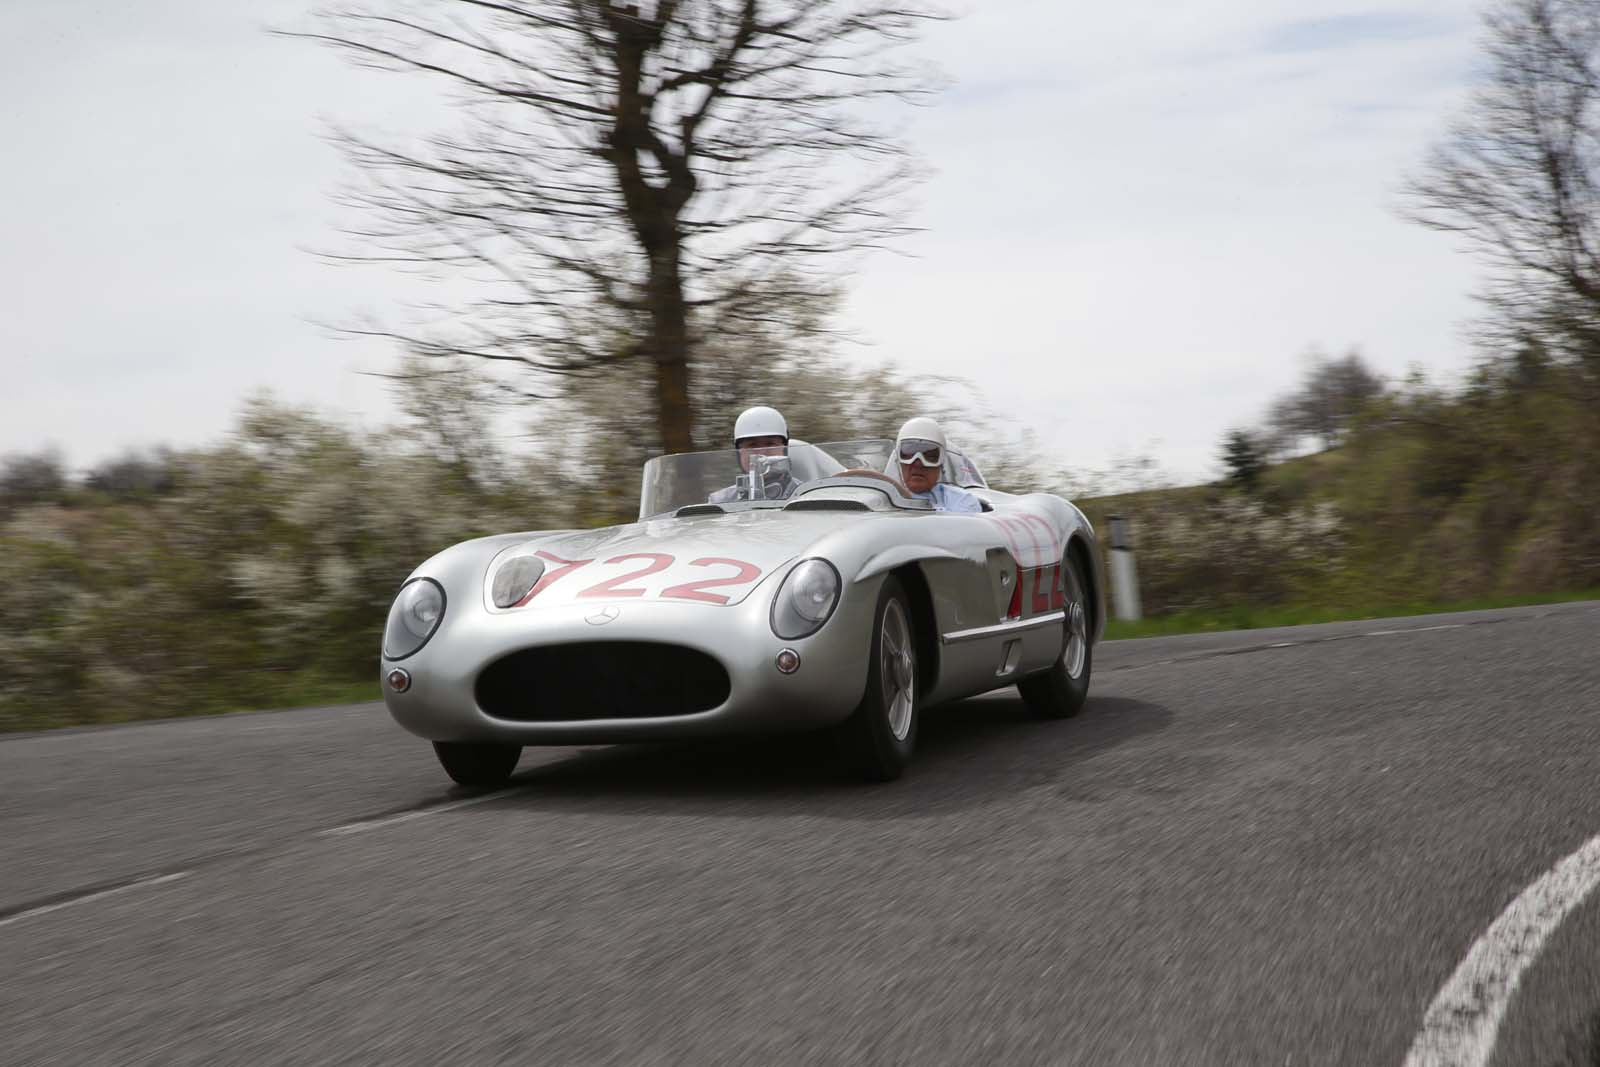 Mercedes-Benz To Honor Sir Stirling Moss At Pebble Beach With Two Cars